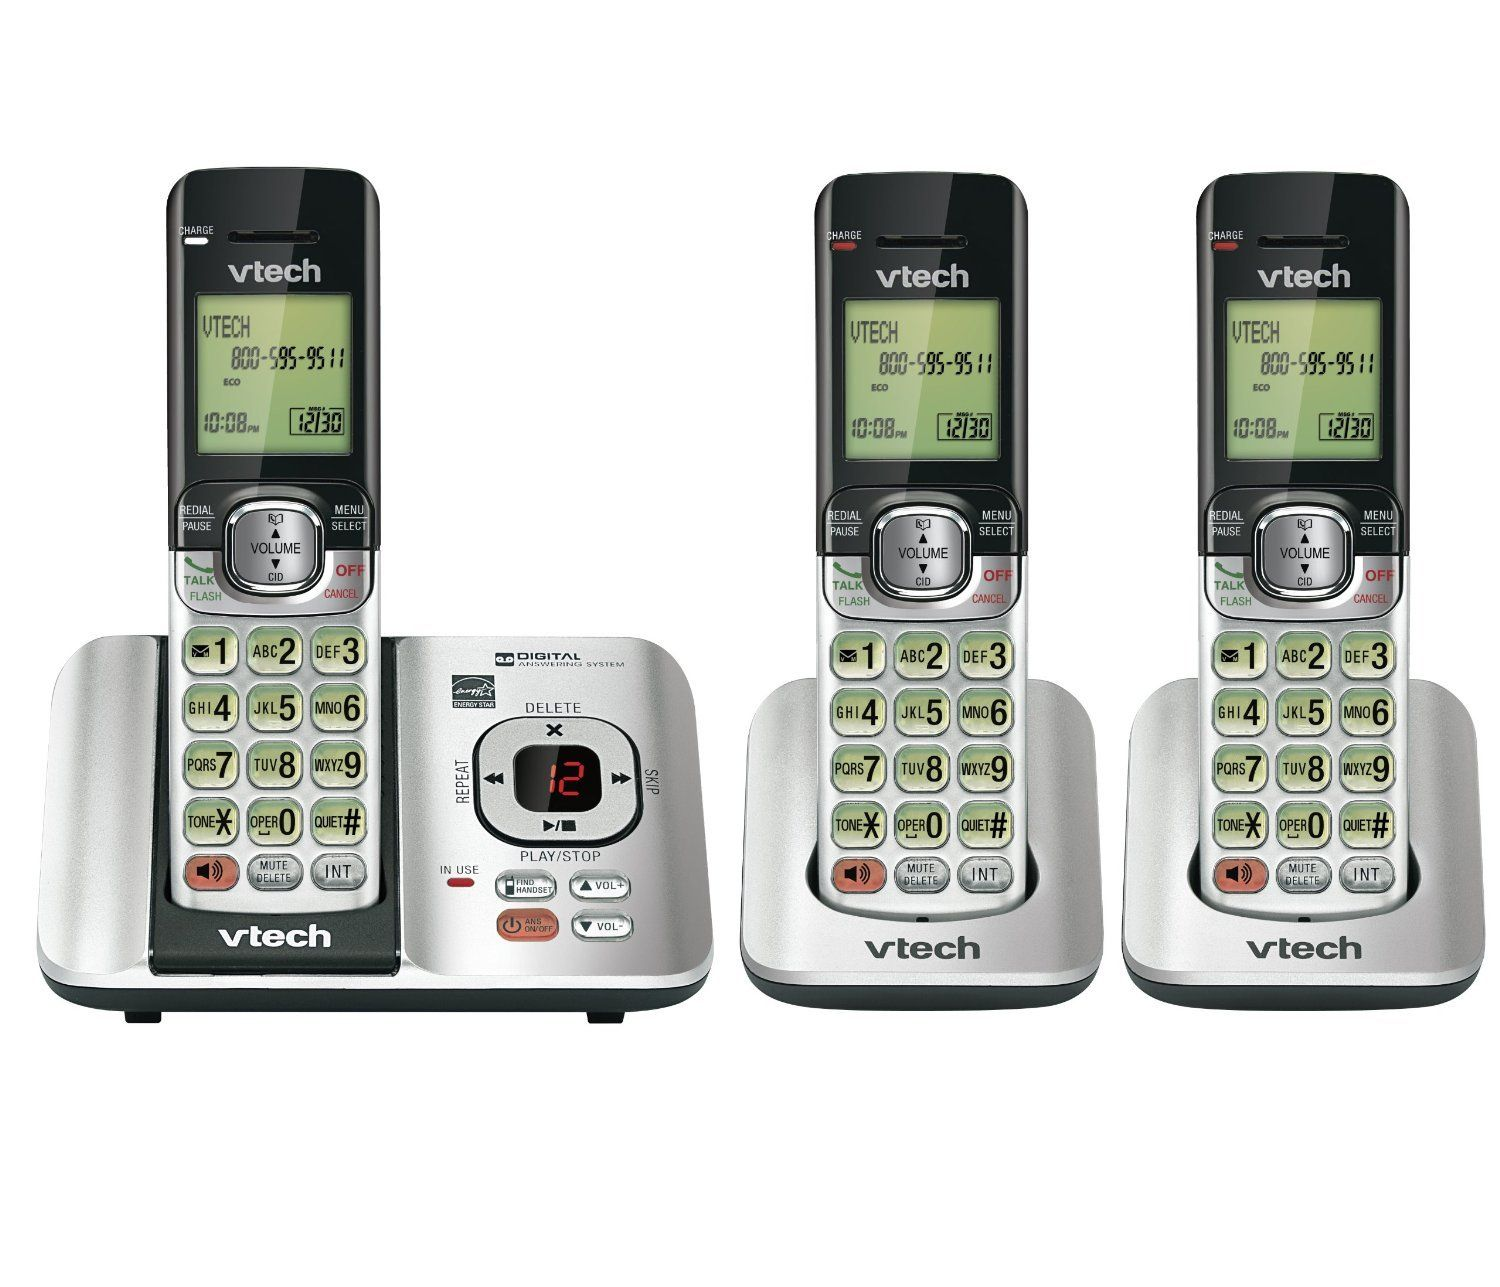 Vtech Cs6529 3 Dect 6 0 Phone Answering System With Caller Id Call Waiting With 3 Cordless Handsets Silver Black Cordless Phone Phone Handset